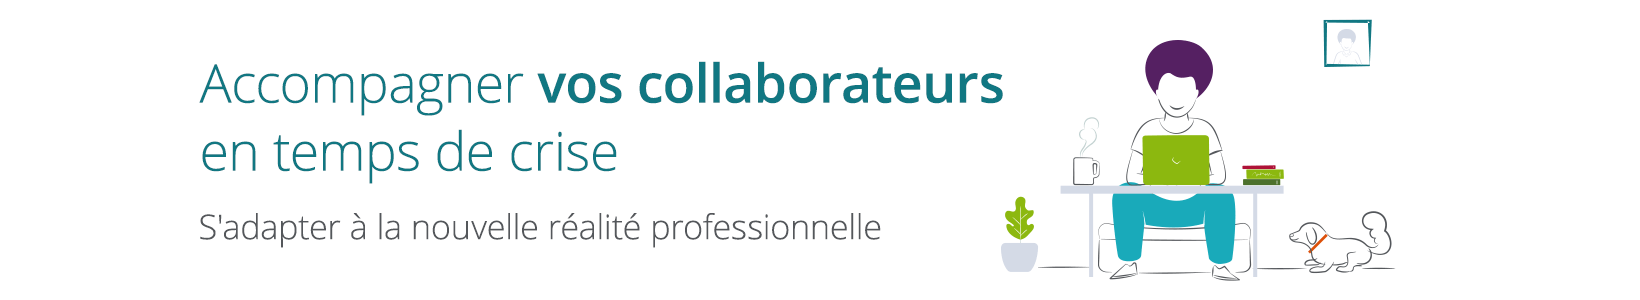 Accompagner vos collaborateurs en temps de crise